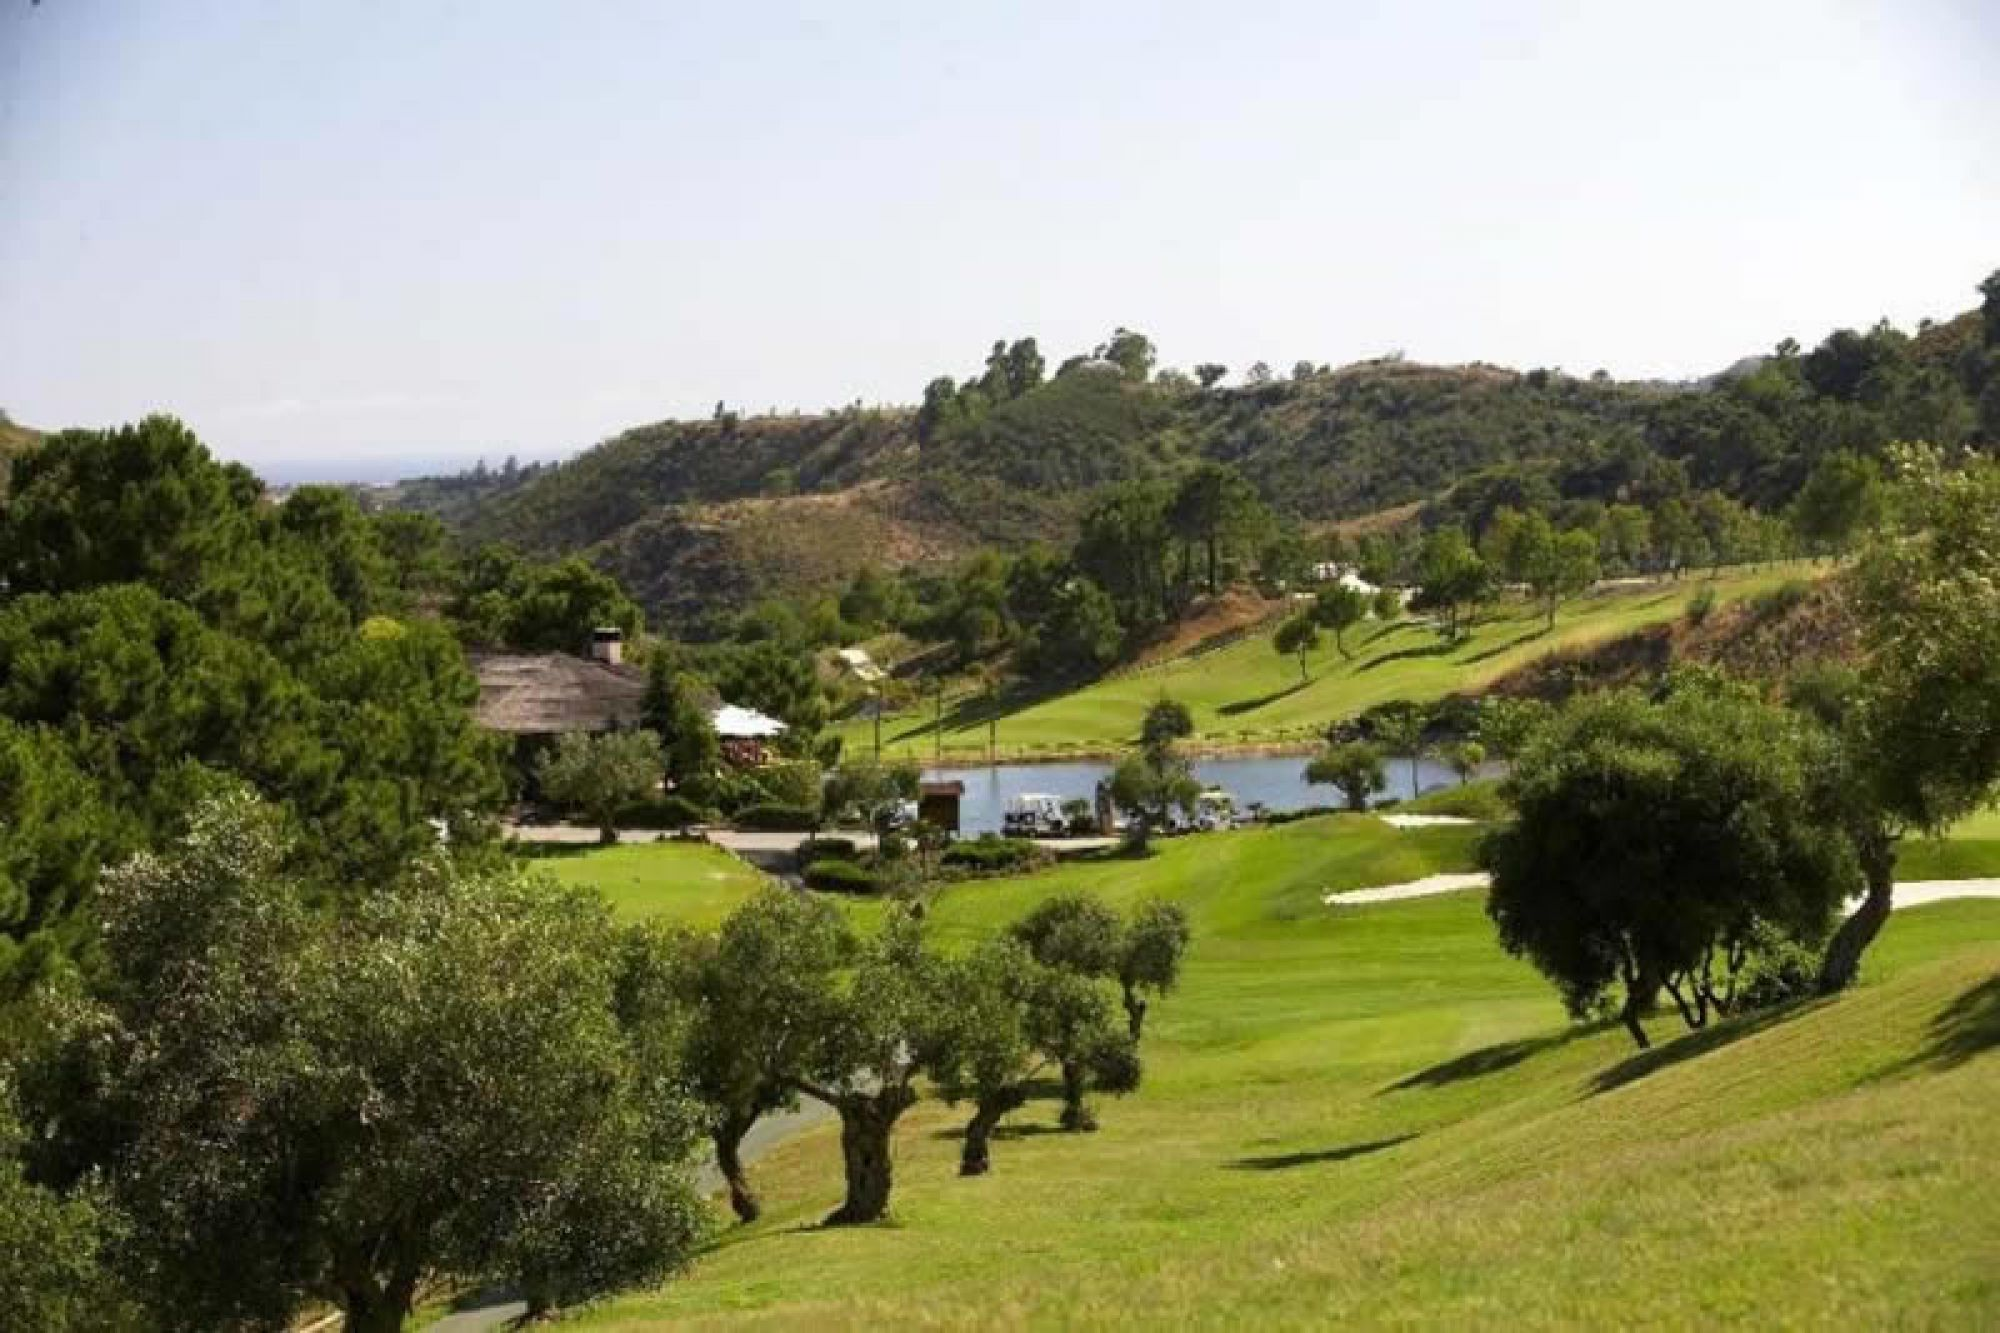 All The Marbella Golf and Country Club's lovely golf course in dramatic Costa Del Sol.